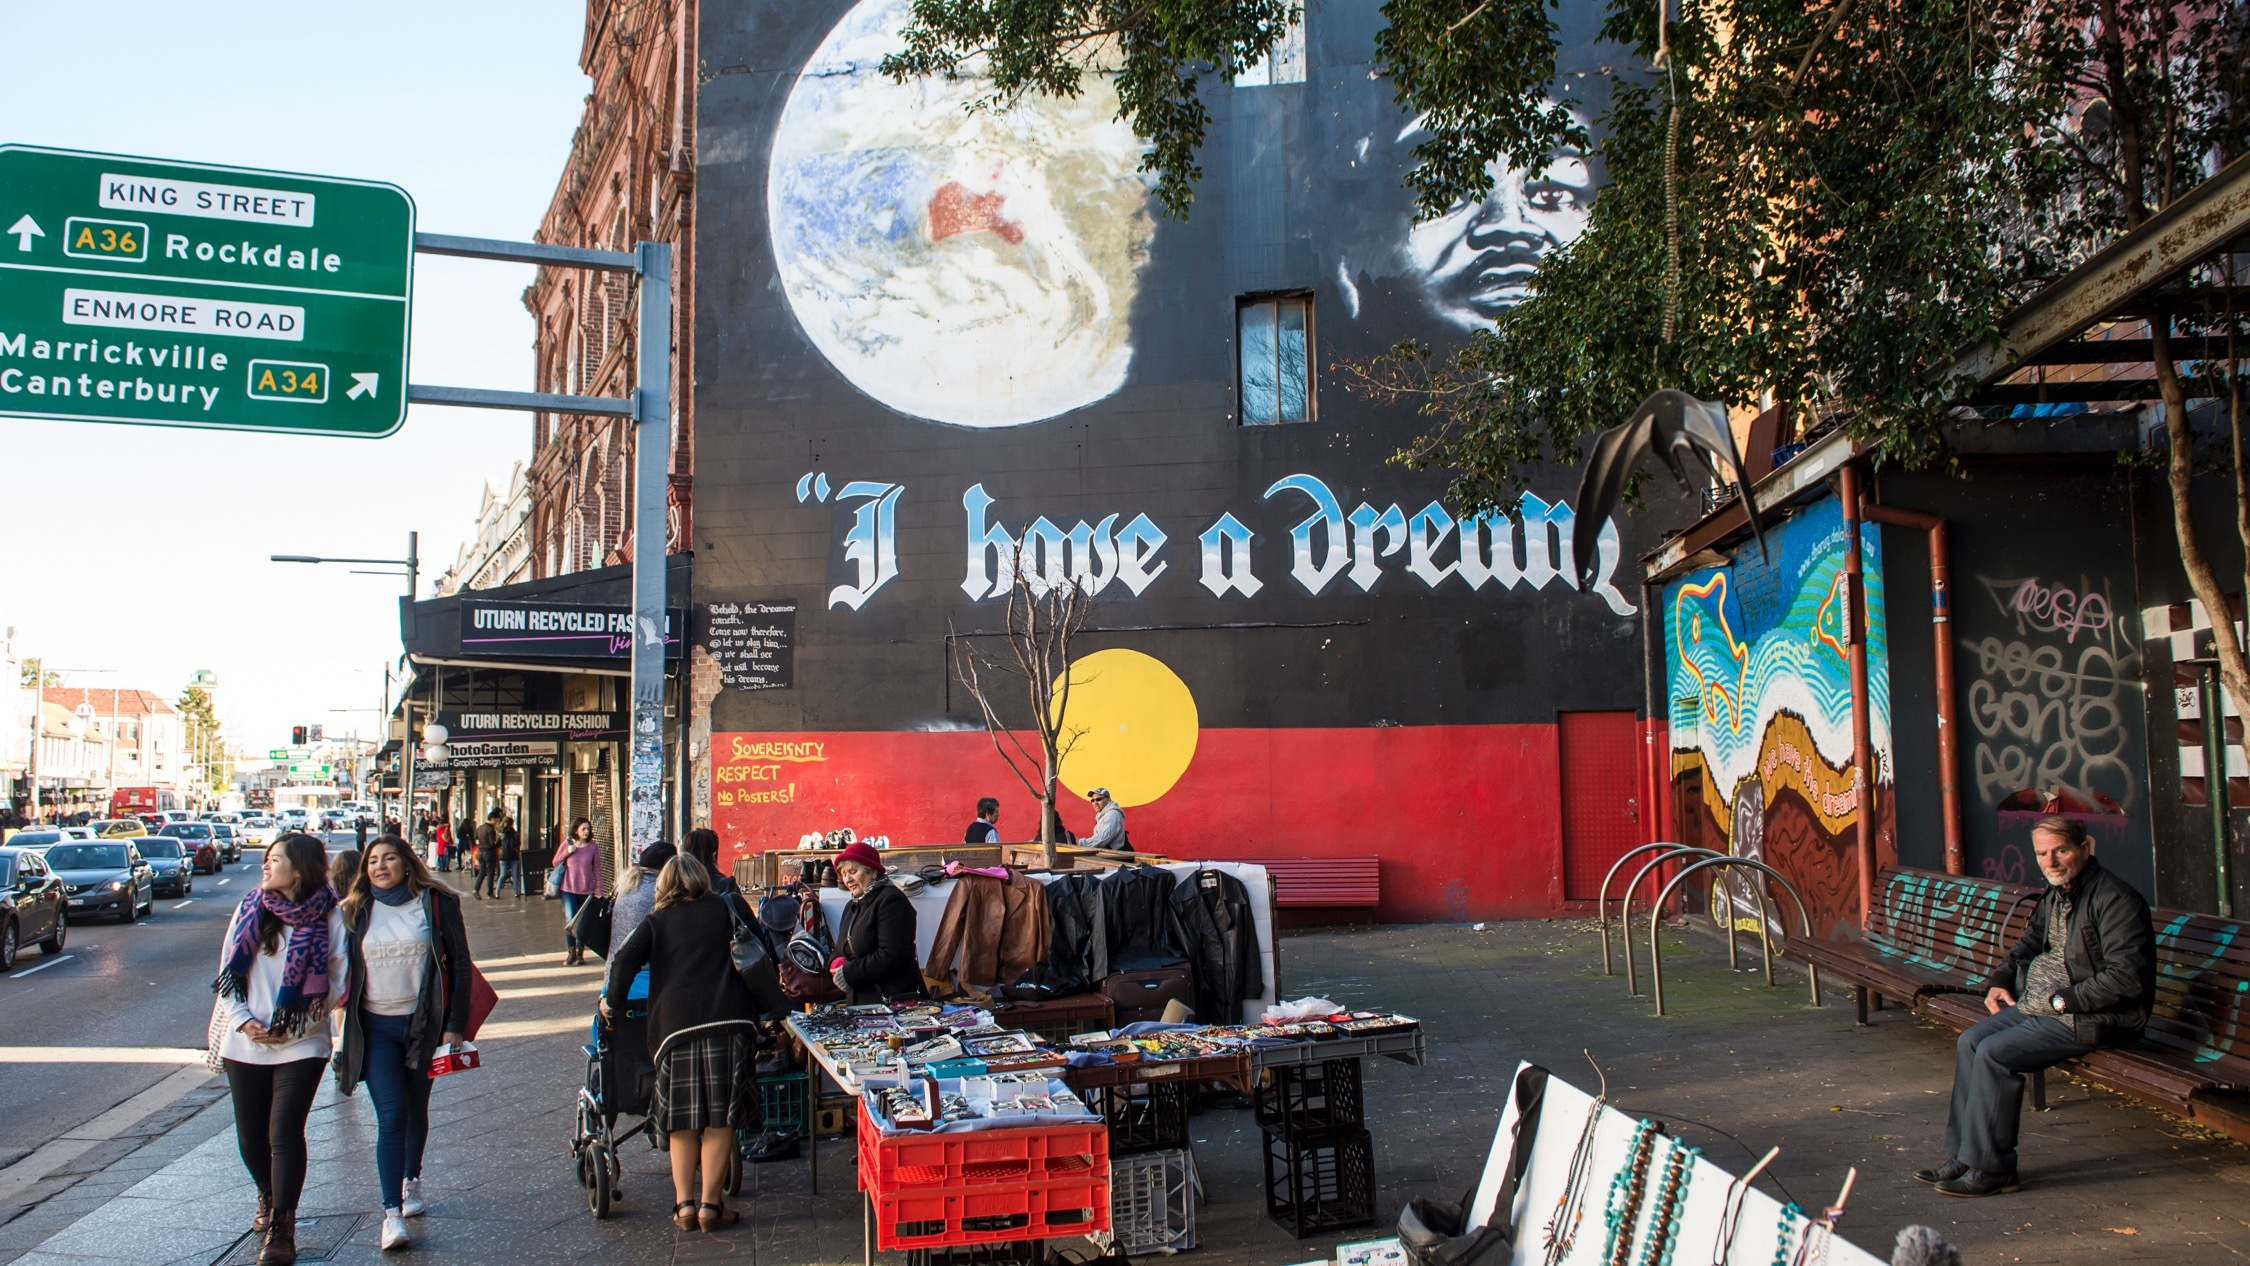 I have a dream mural, market stall on street at Newtown